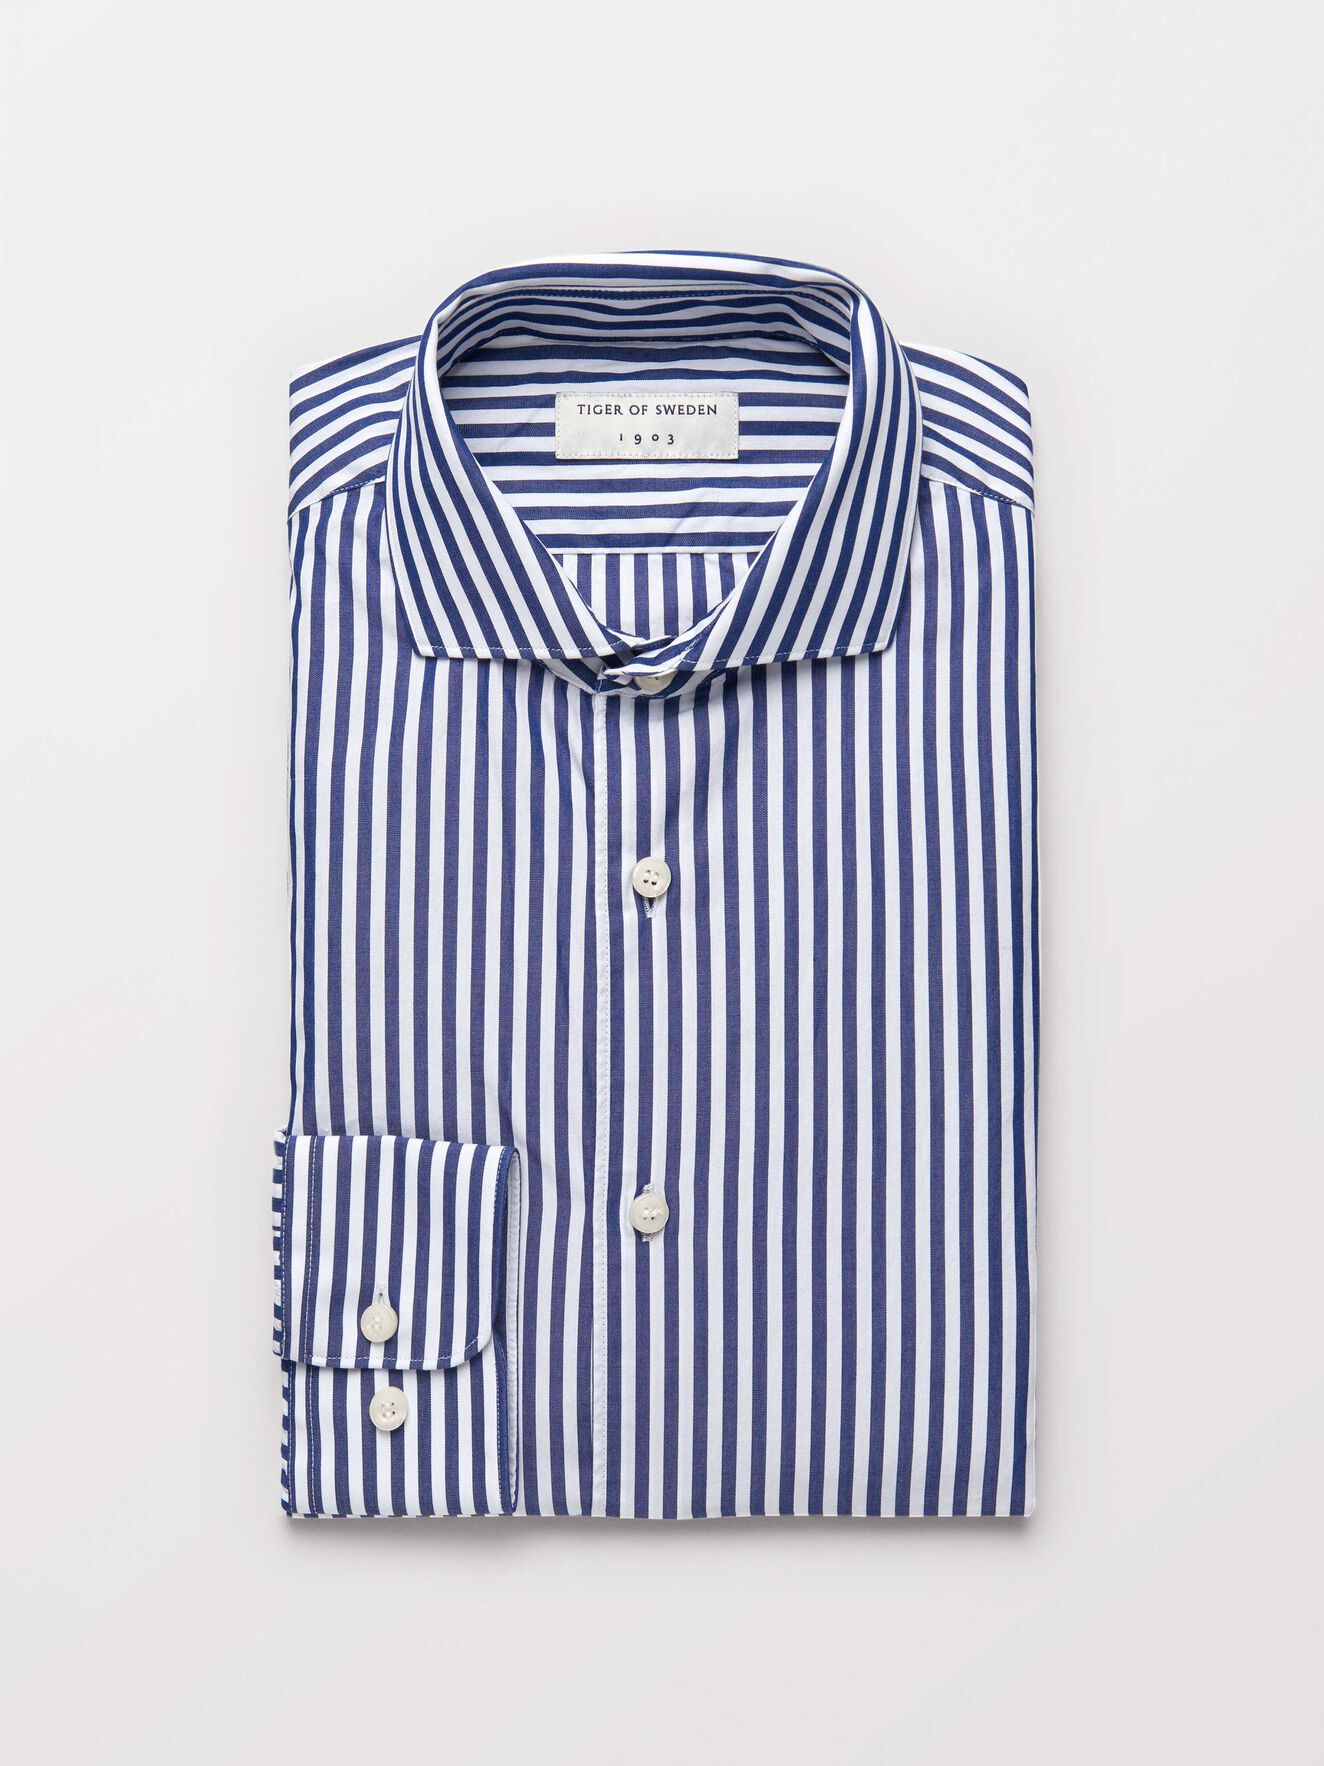 Farrell 5 Shirt in Light Ink from Tiger of Sweden